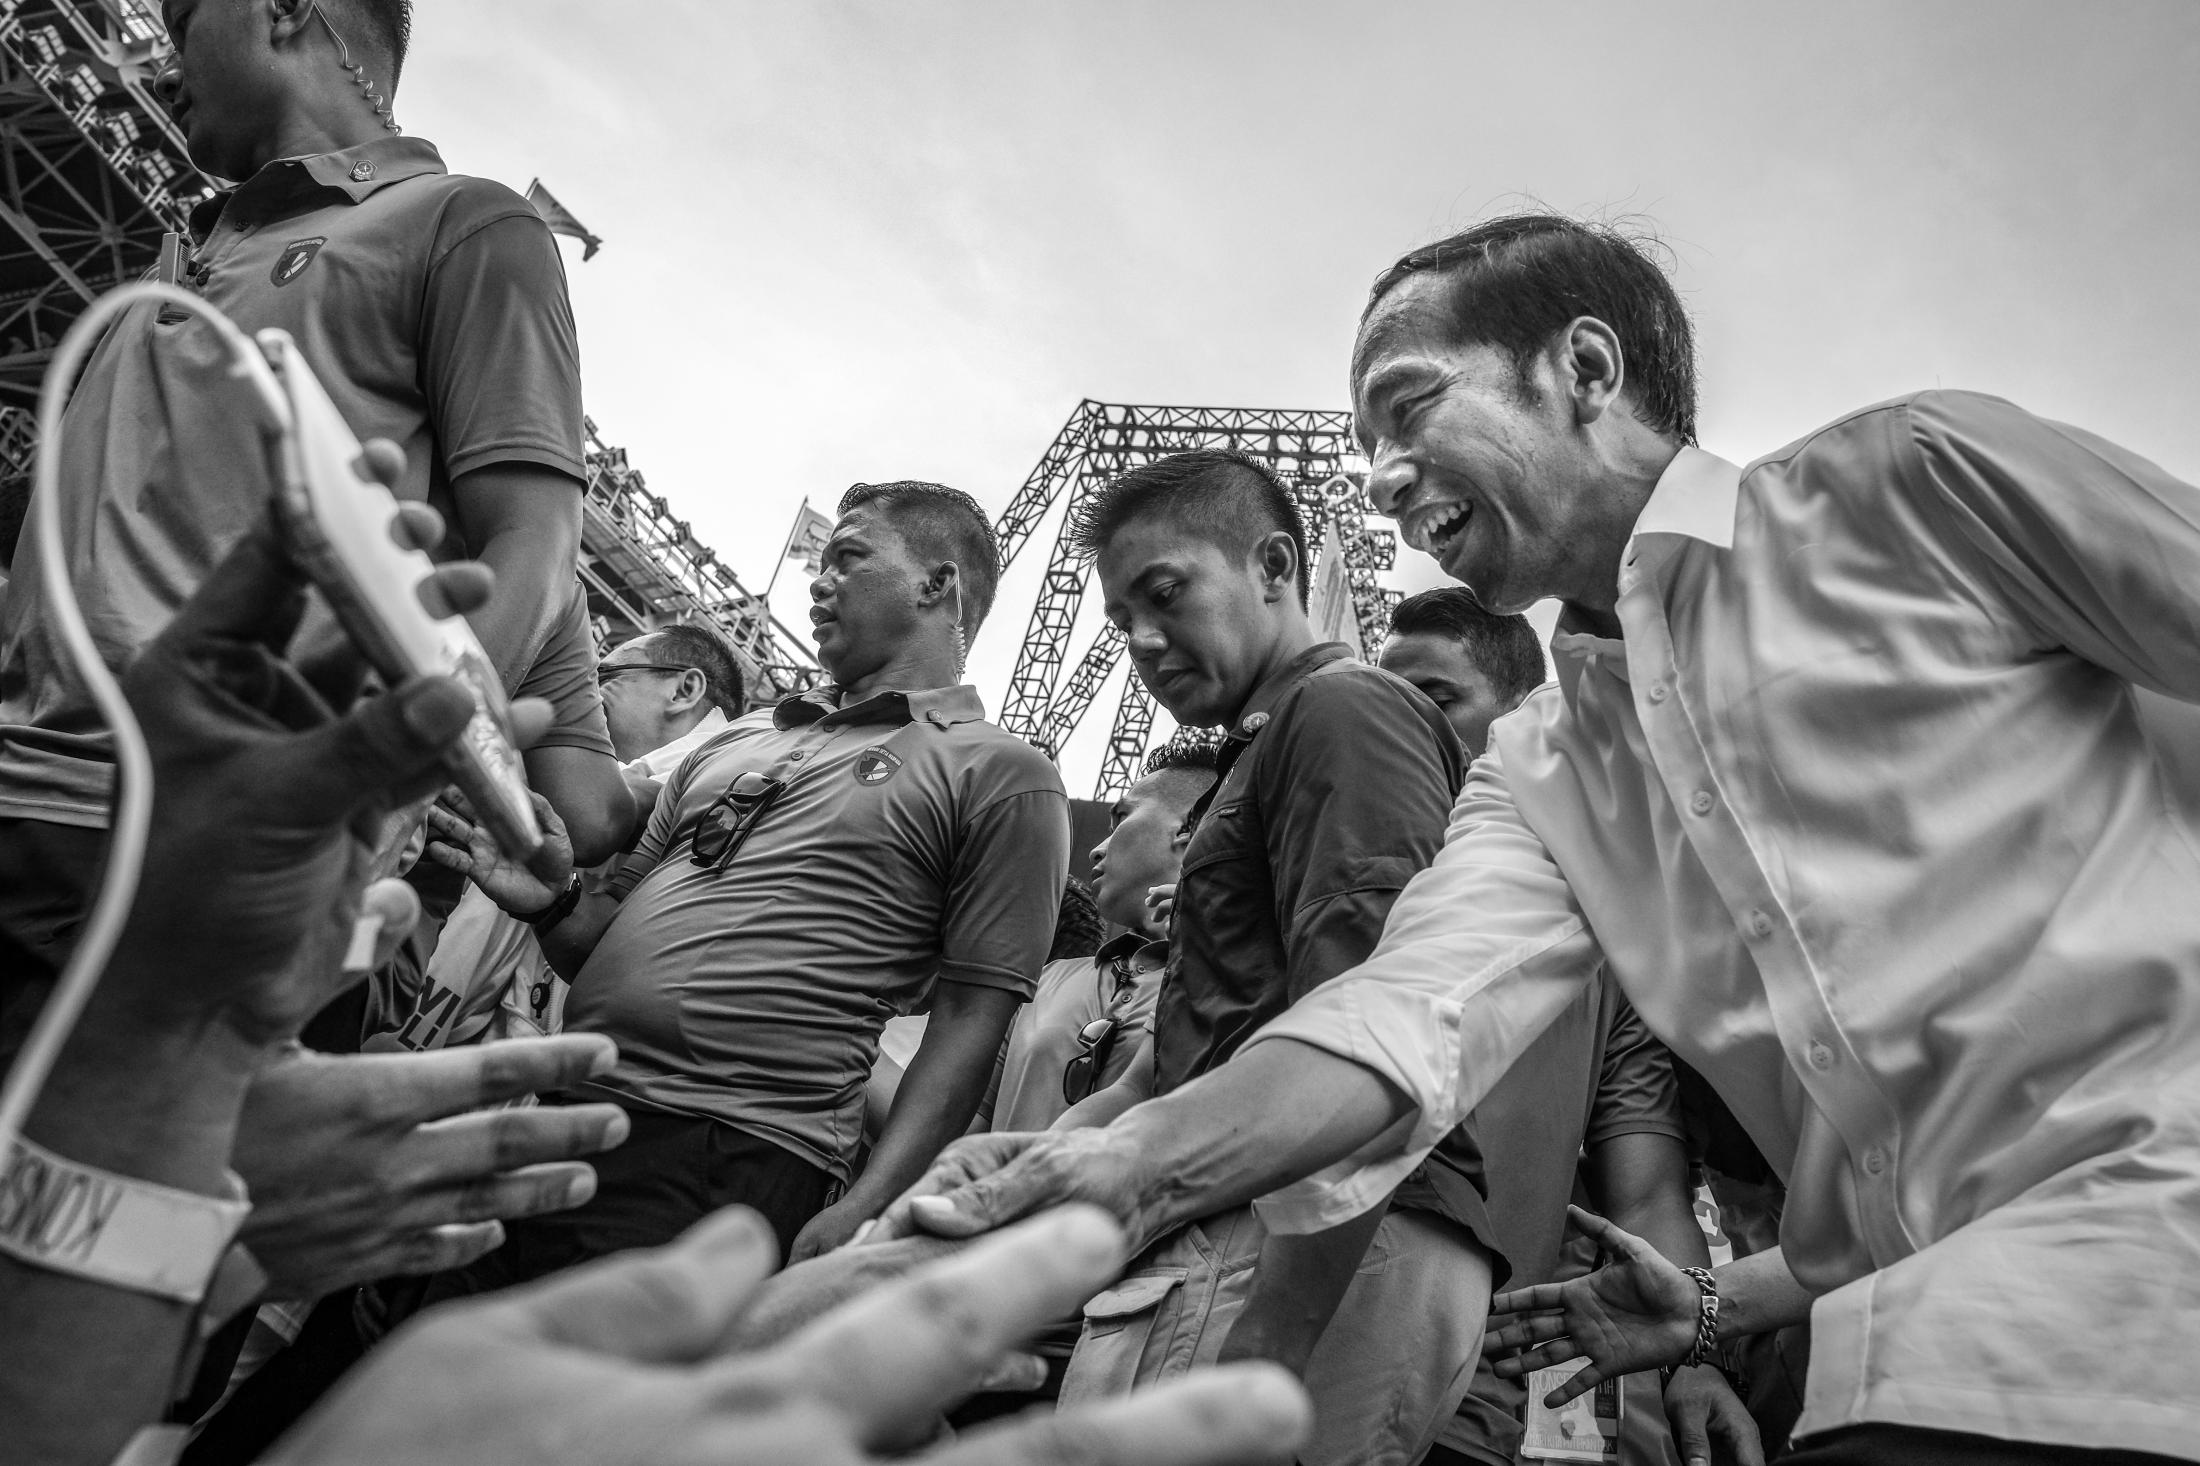 Indonesia's incumbent presidential candidate Joko Widodo greets his supporters during a campaign rally at Gelora Bung Karno stadium in Jakarta, Indonesia, April 13, 2019. Widodo, 57, know as Jokowi, is running on his own record for a second term beat former general Prabowo Subianto for his second term.